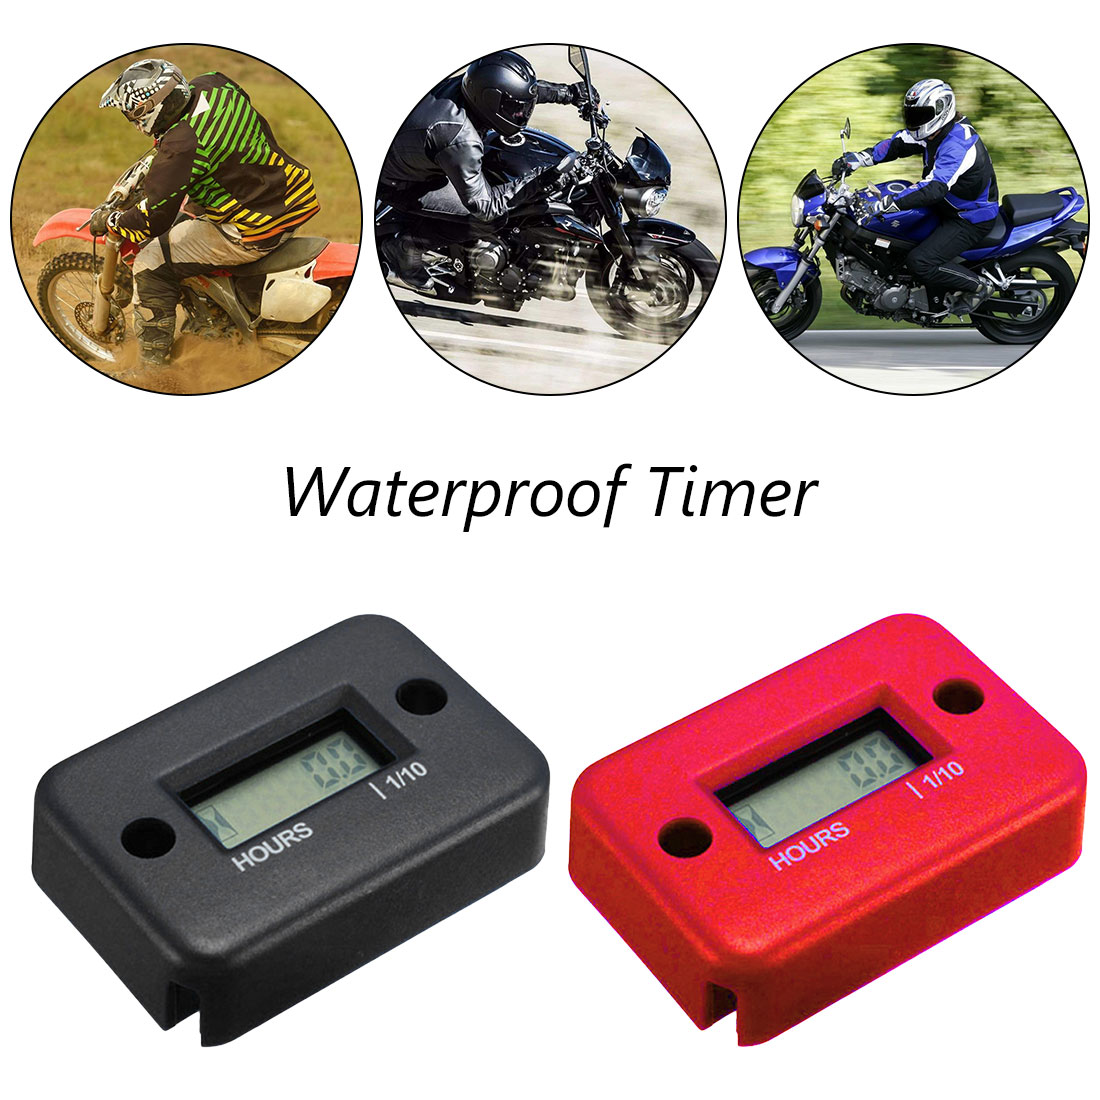 Waterproof LCD Display Digital Hour Meter Inductive Hour Meter Tachometer for Bike Motorcycle Snowmobile Marine Engine 0-9999.9H image